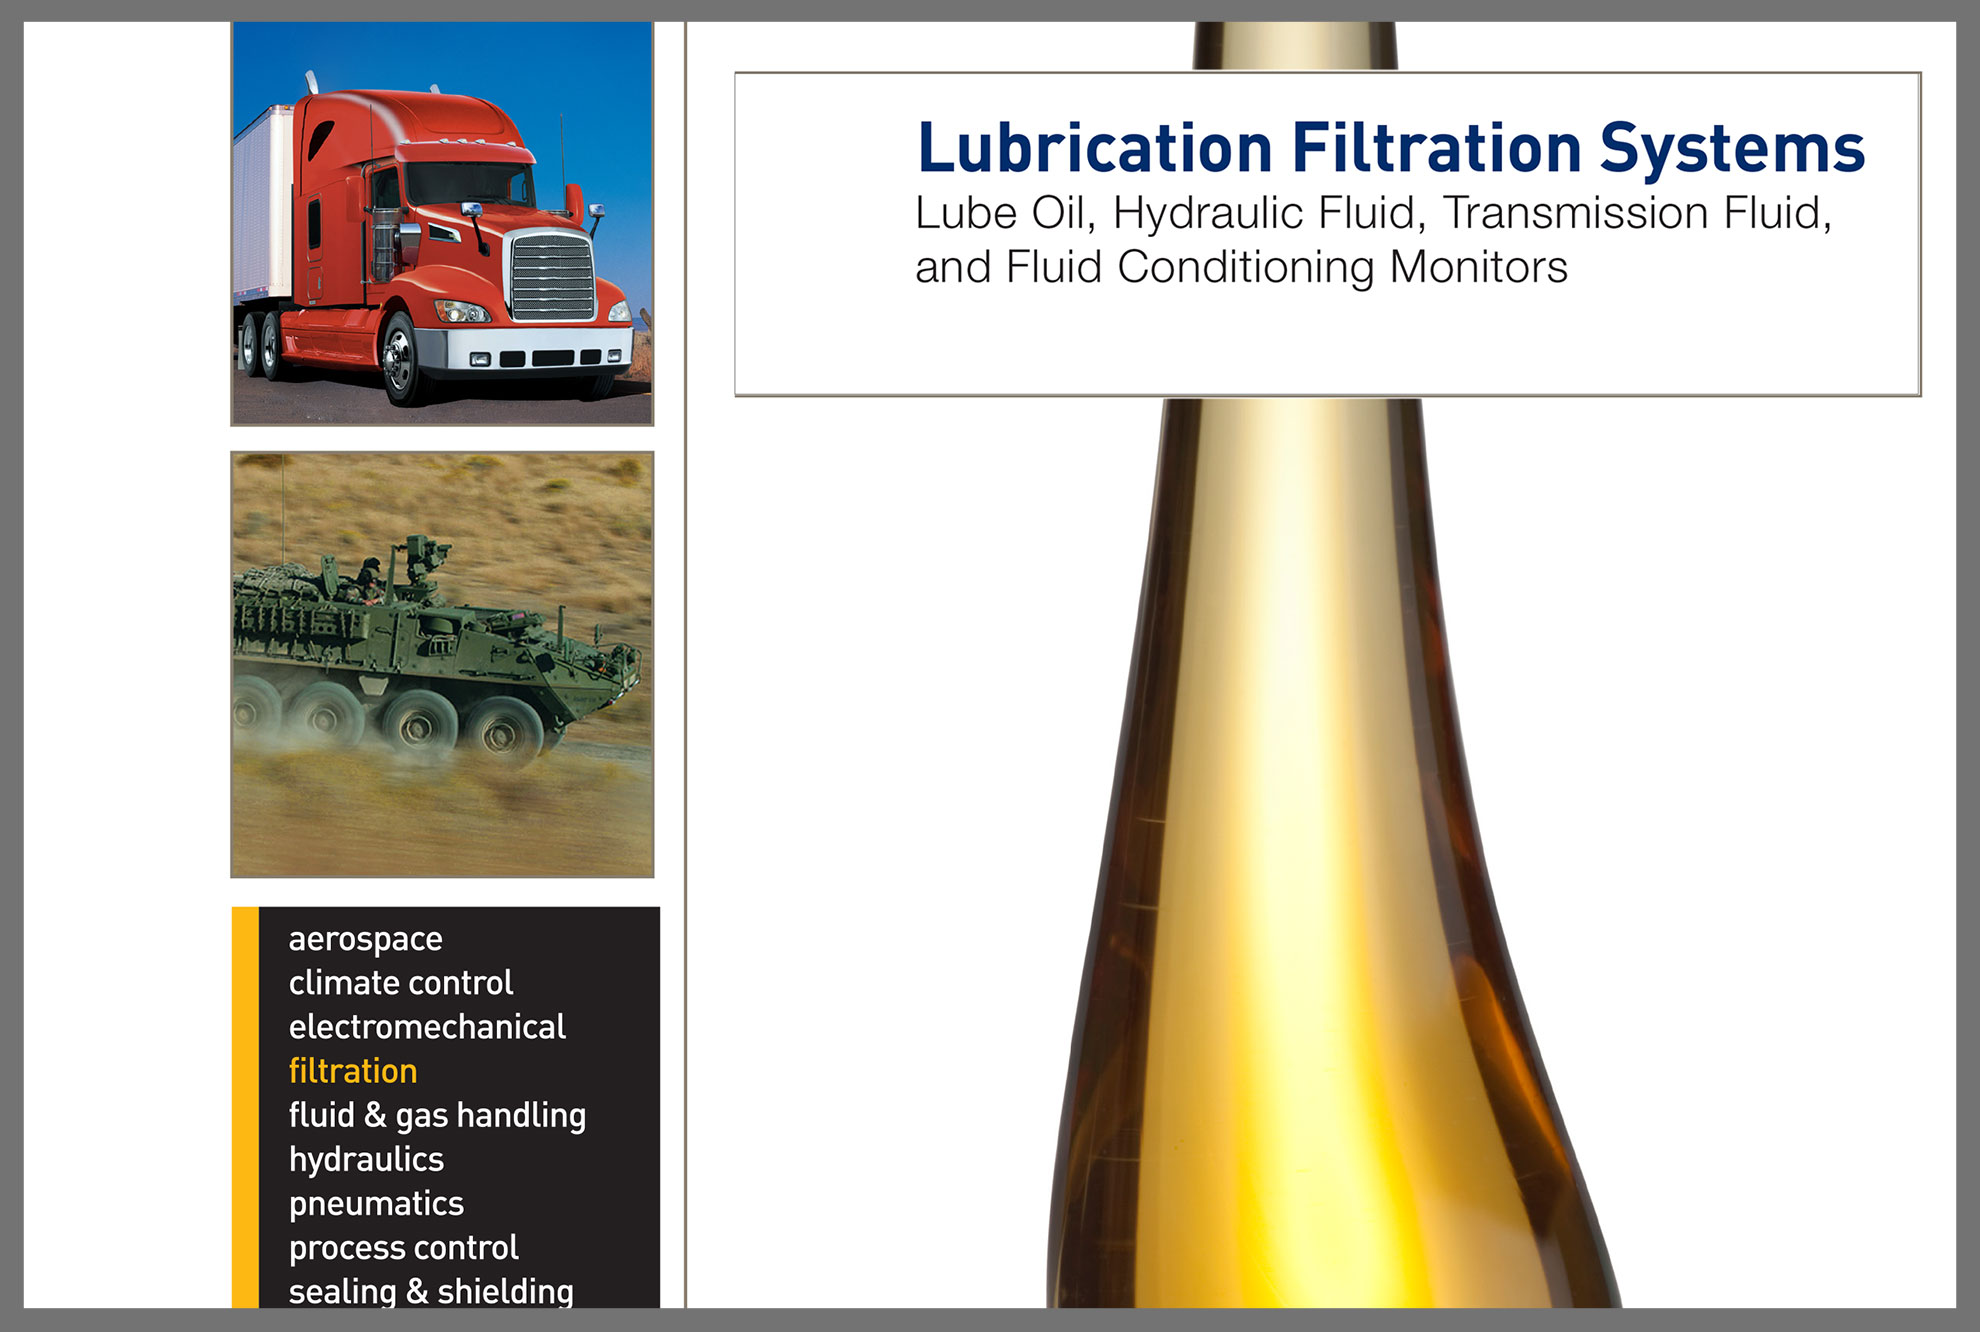 https://www.thomasgroupltd.co.uk/wp-content/uploads/2019/01/Parker_Lubrication_Filtration-image-1.jpg